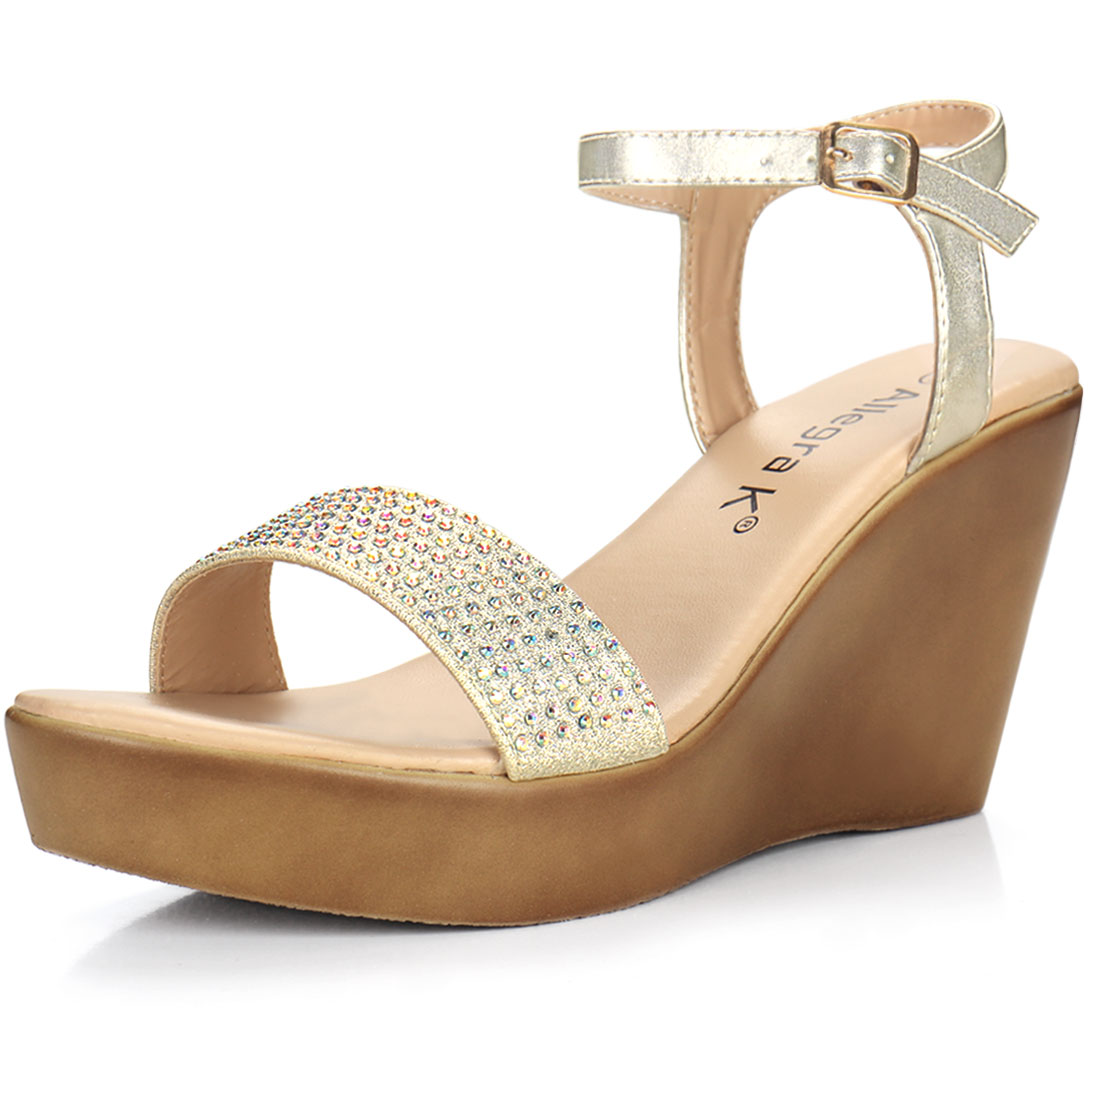 Woman Rhinestones Embellished Open Toe Wedge Sandals Gold US 8